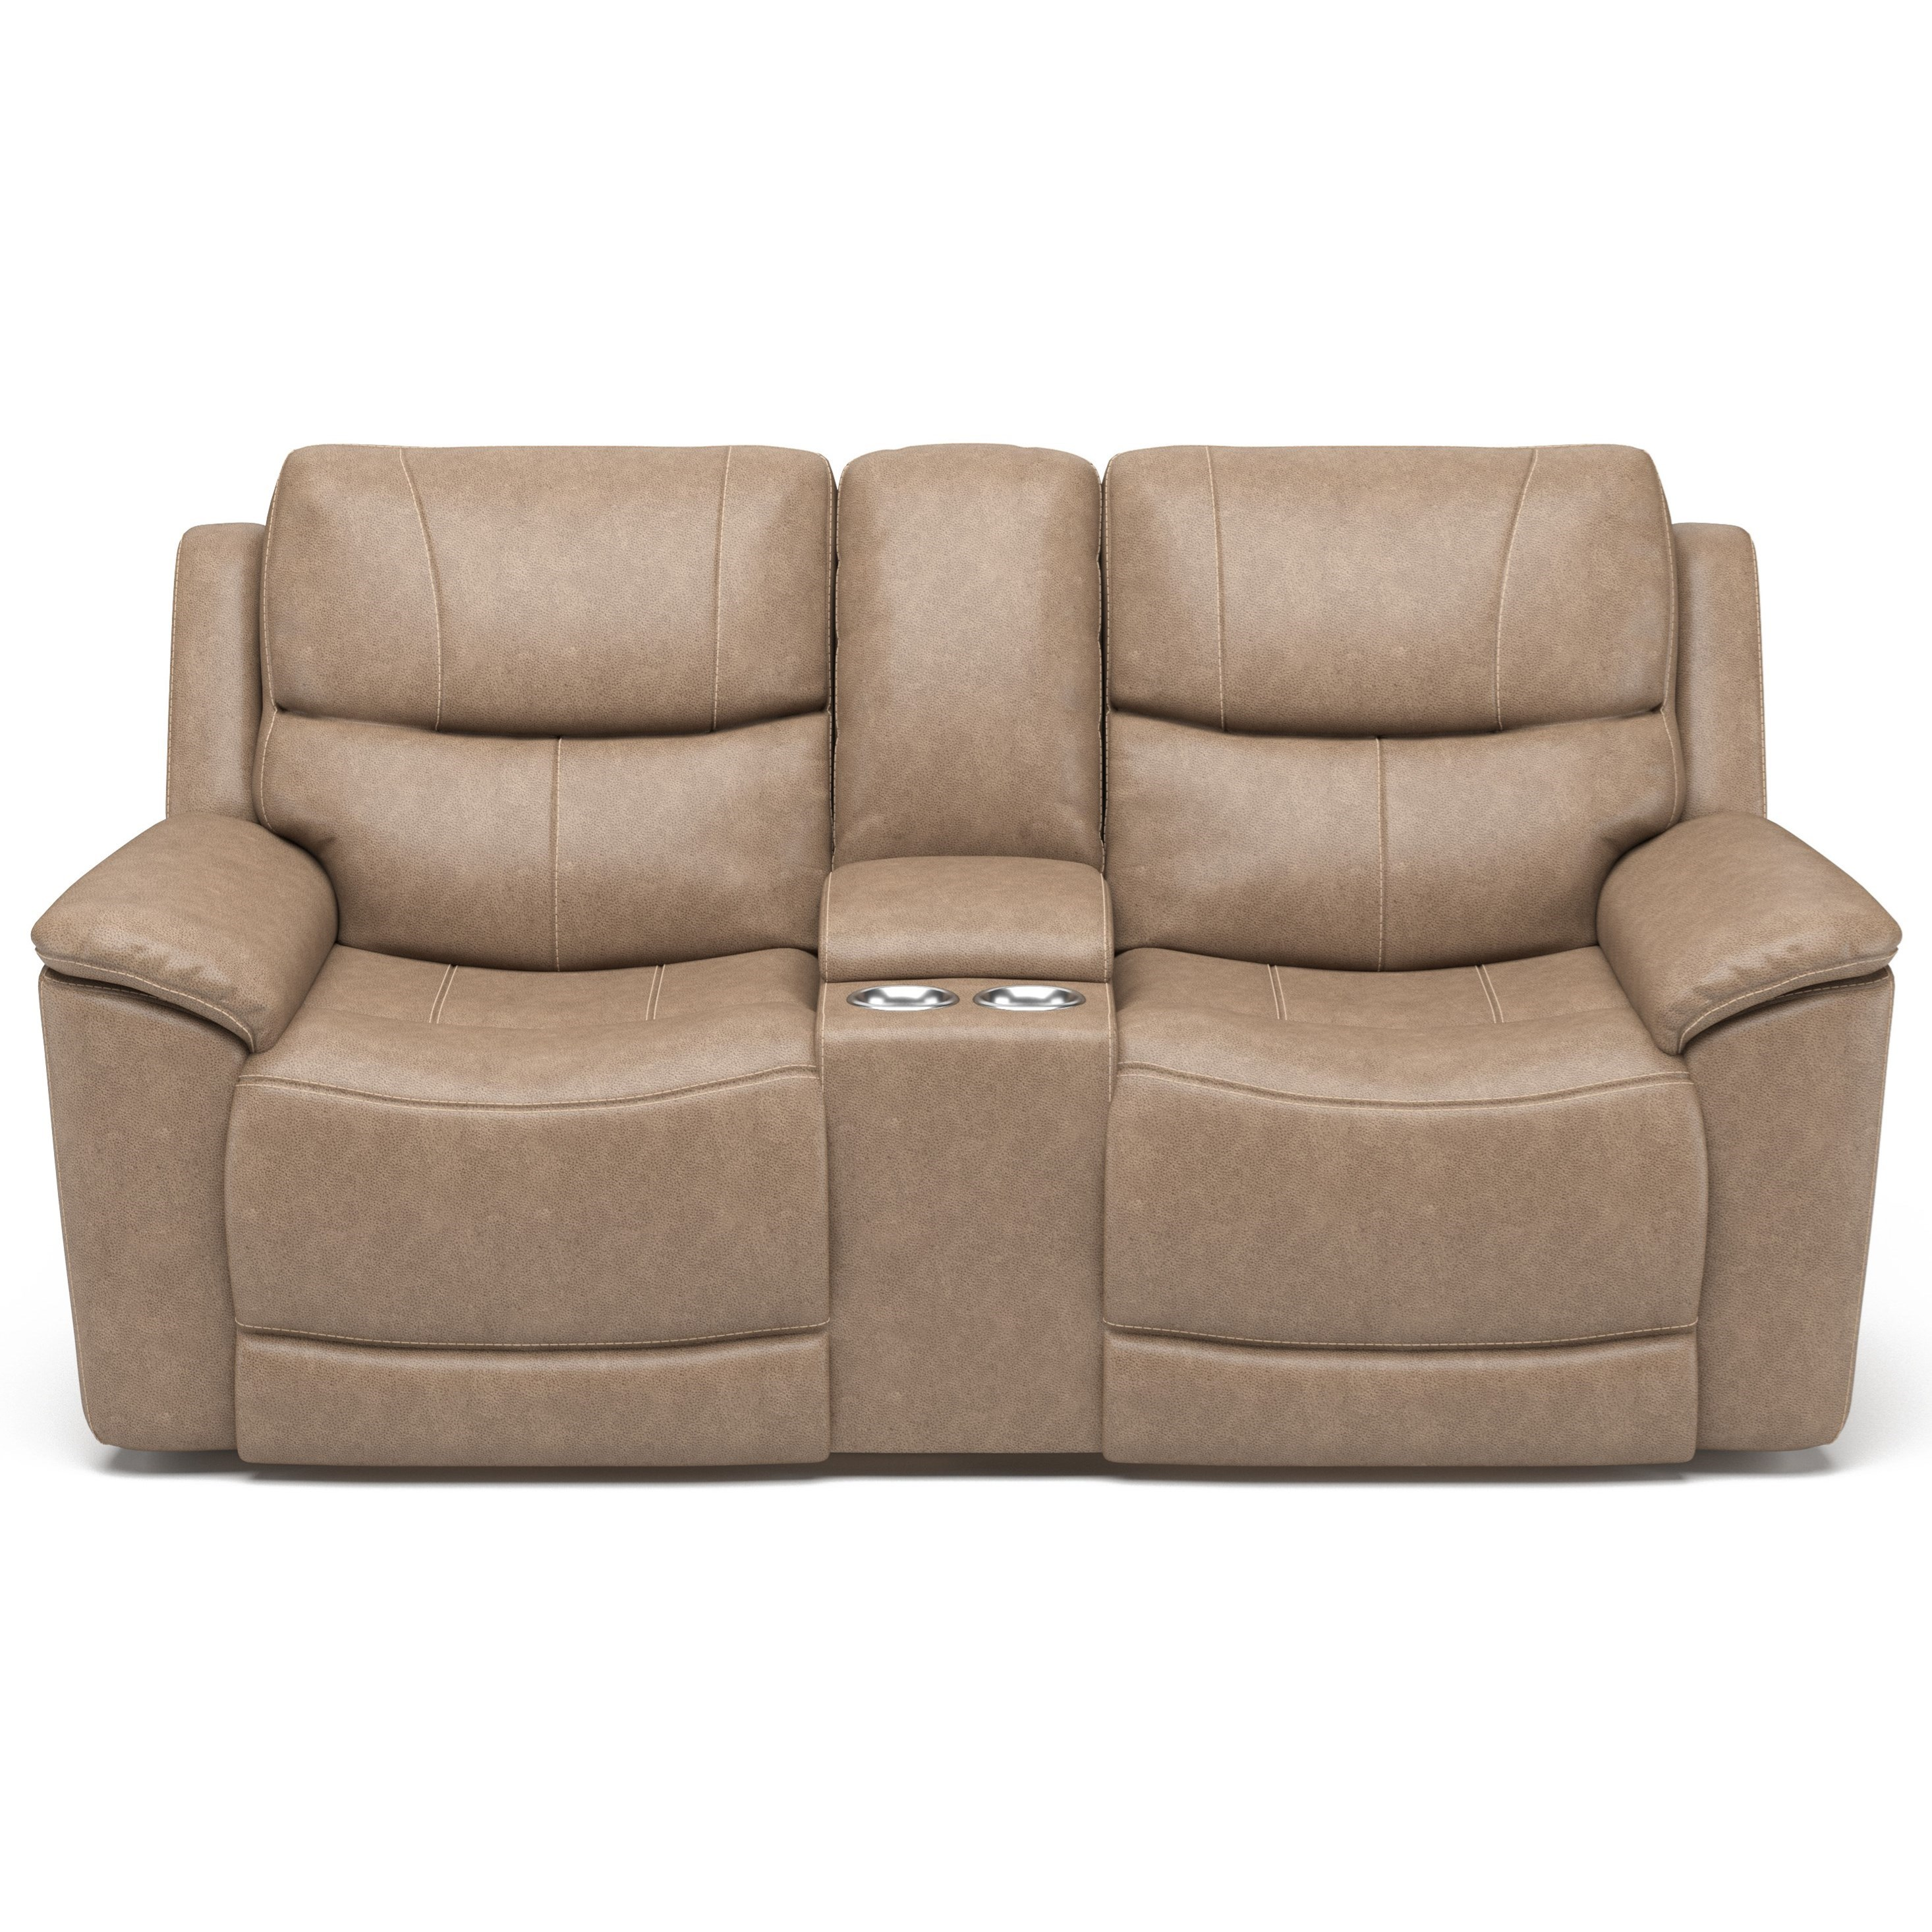 Latitudes - Cade Power Console Love Seat by Flexsteel at Walker's Furniture